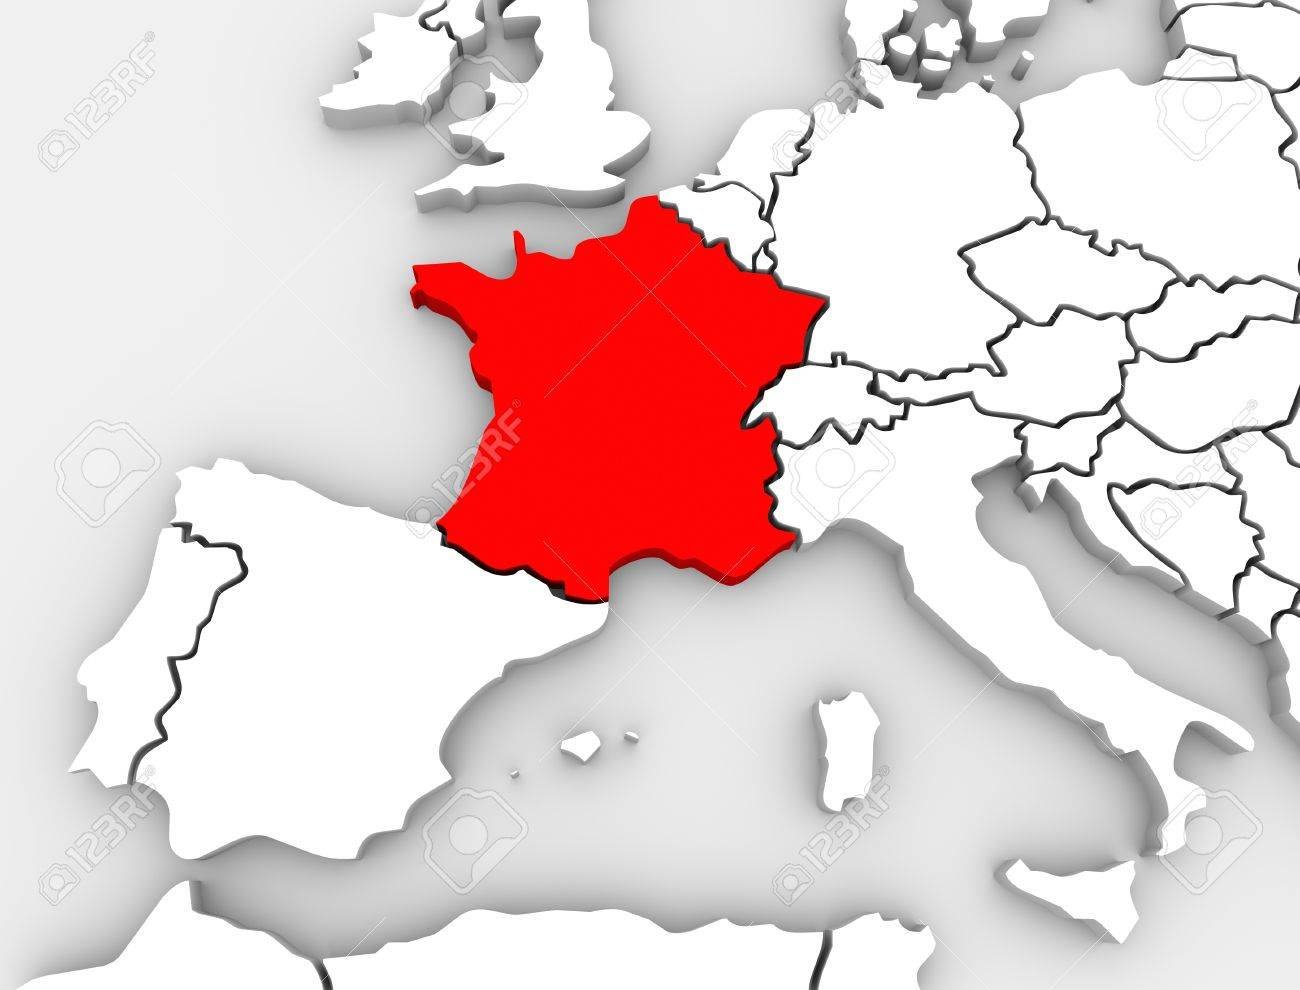 Map Of Europe With France Highlighted.An Abstract 3d Map Of Europe The Continent And Several Countries